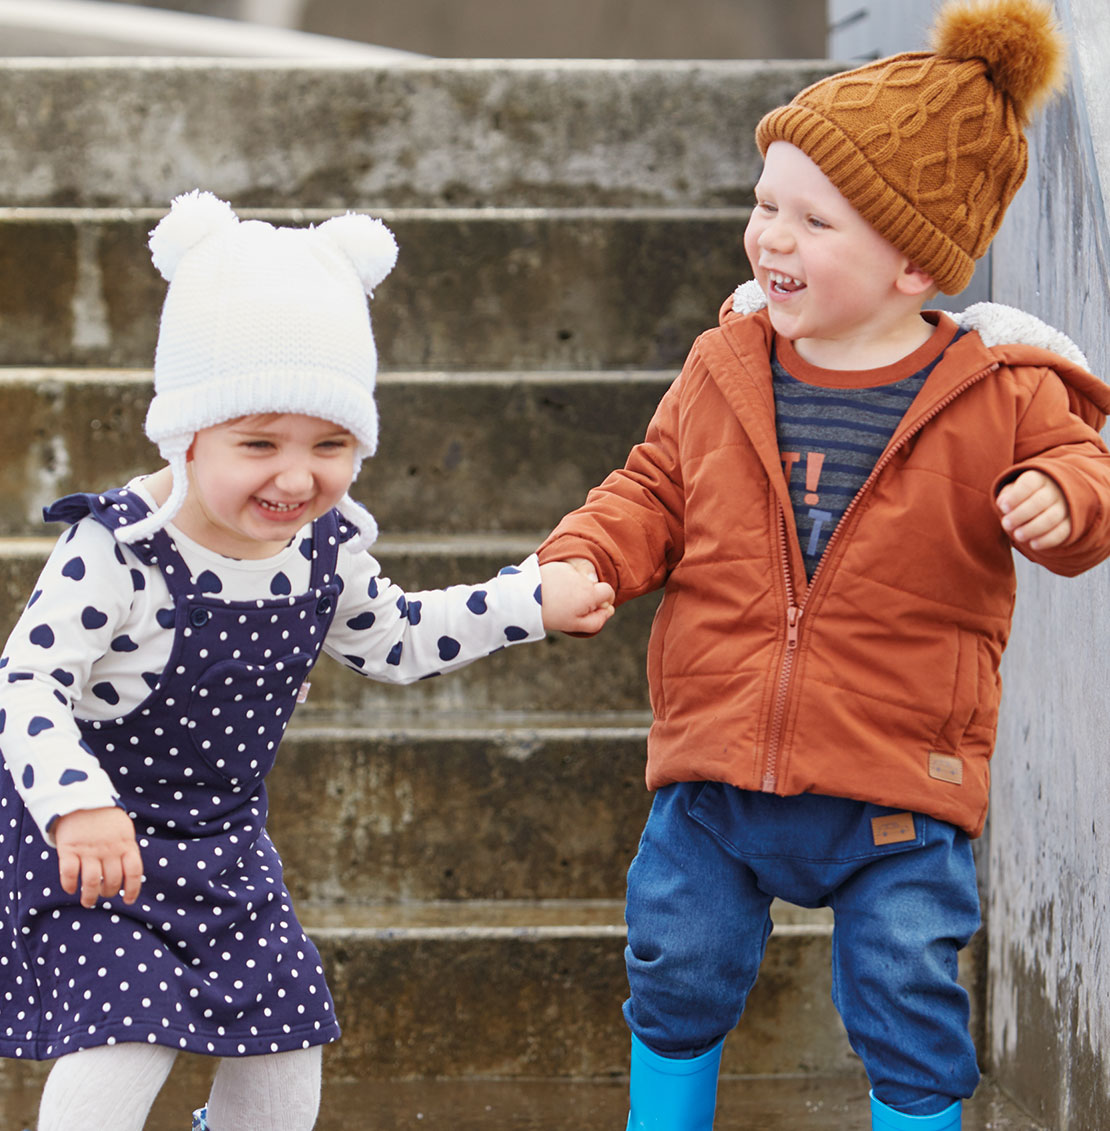 59e9bfea516 New Kids  Clothing Collection - Farmers